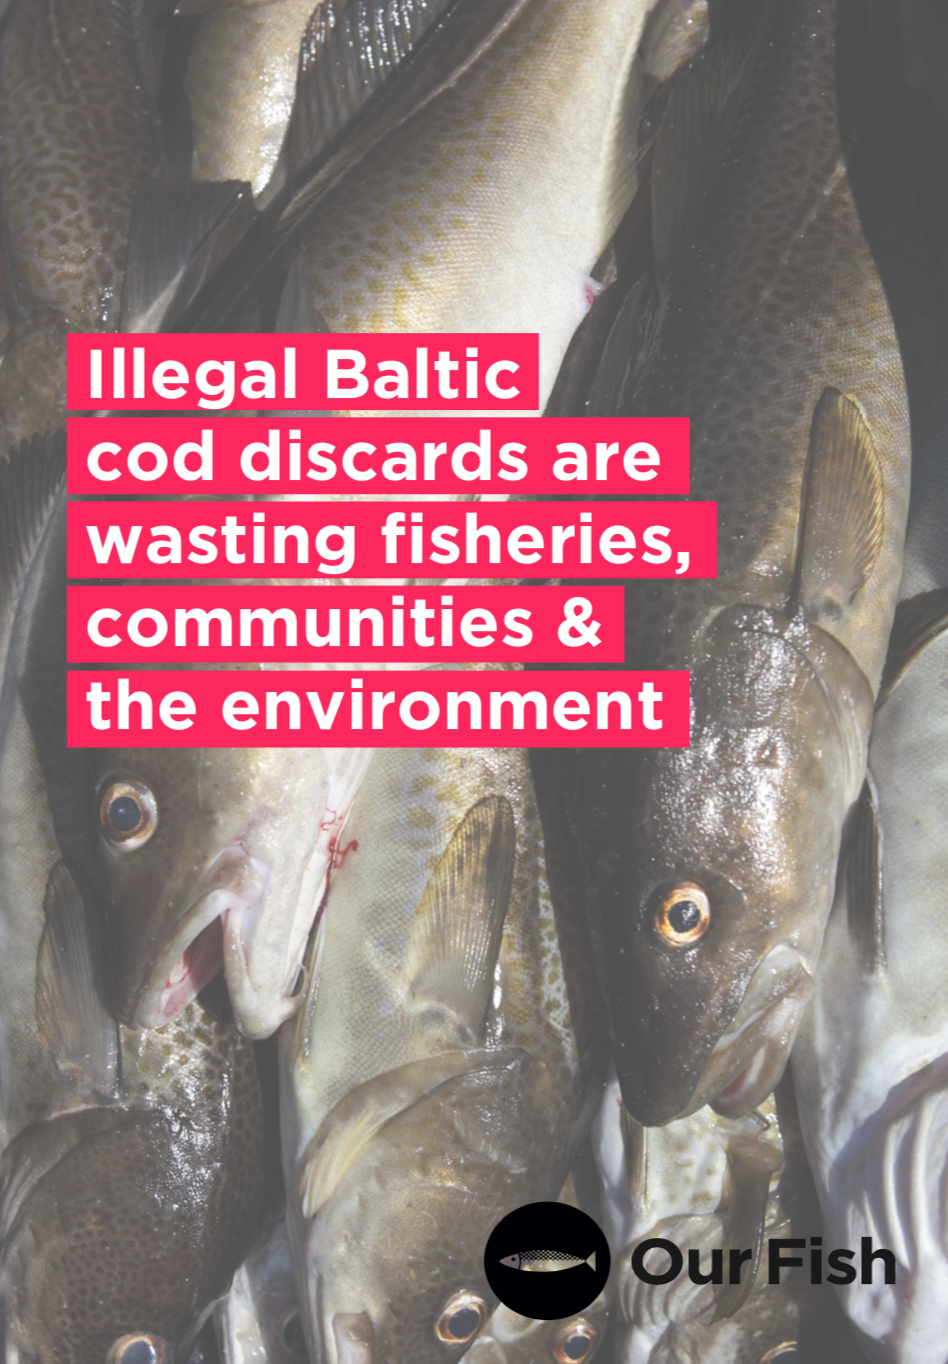 Illegal Baltic cod discards are wasting fisheries, communities & the environment